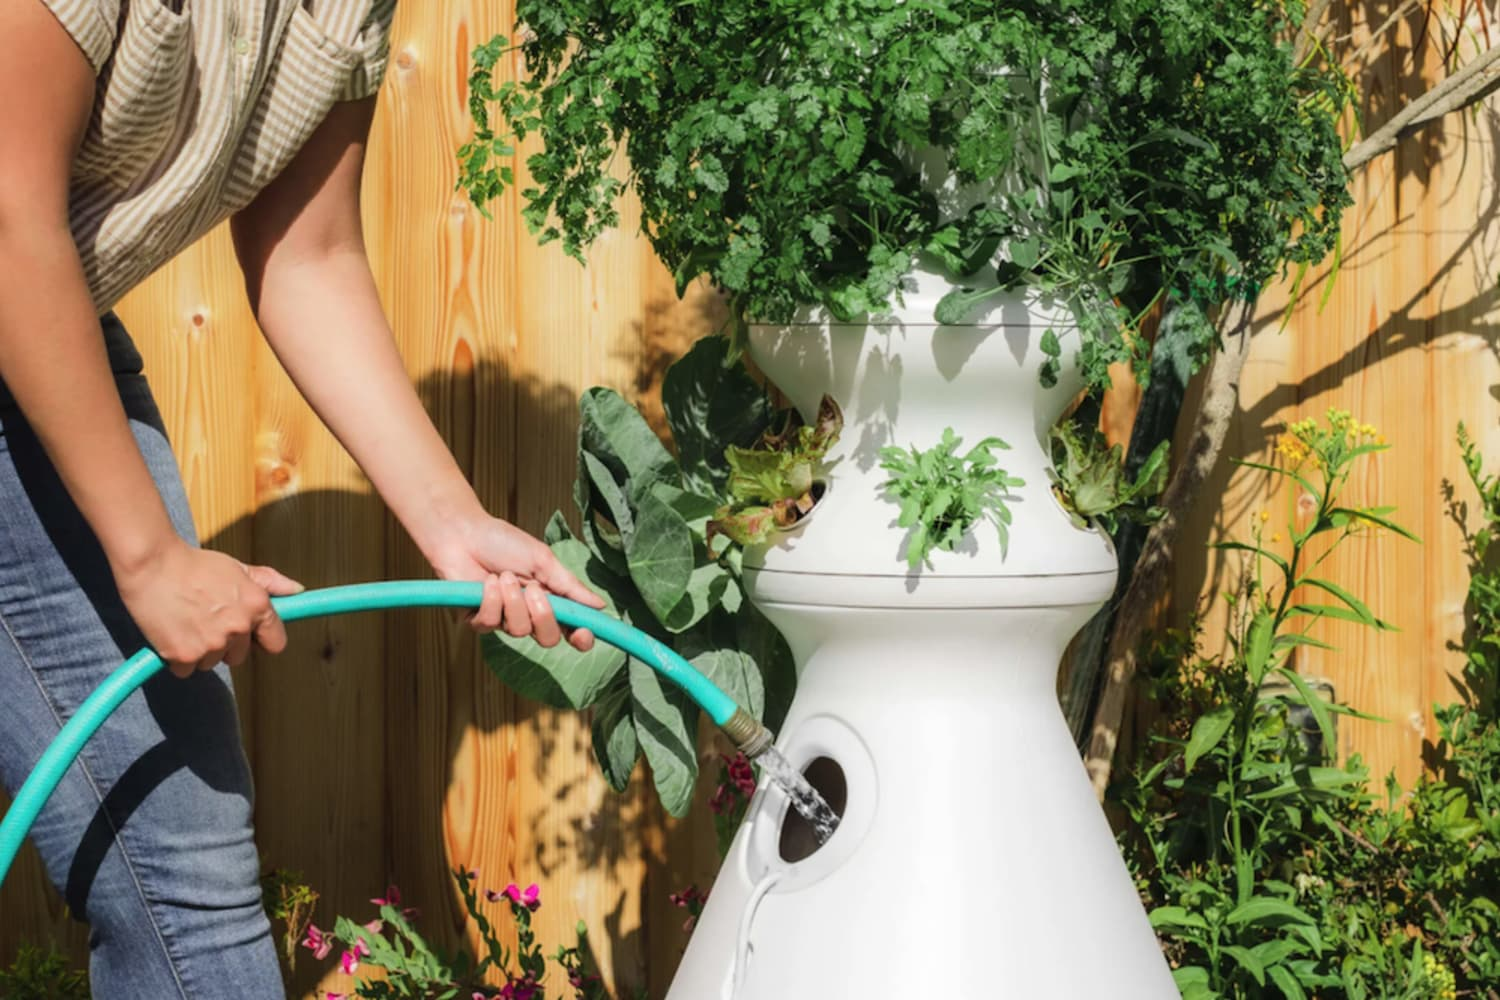 This Celebrity-Favorite Gardening System Grows Fresh Ingredients at Home